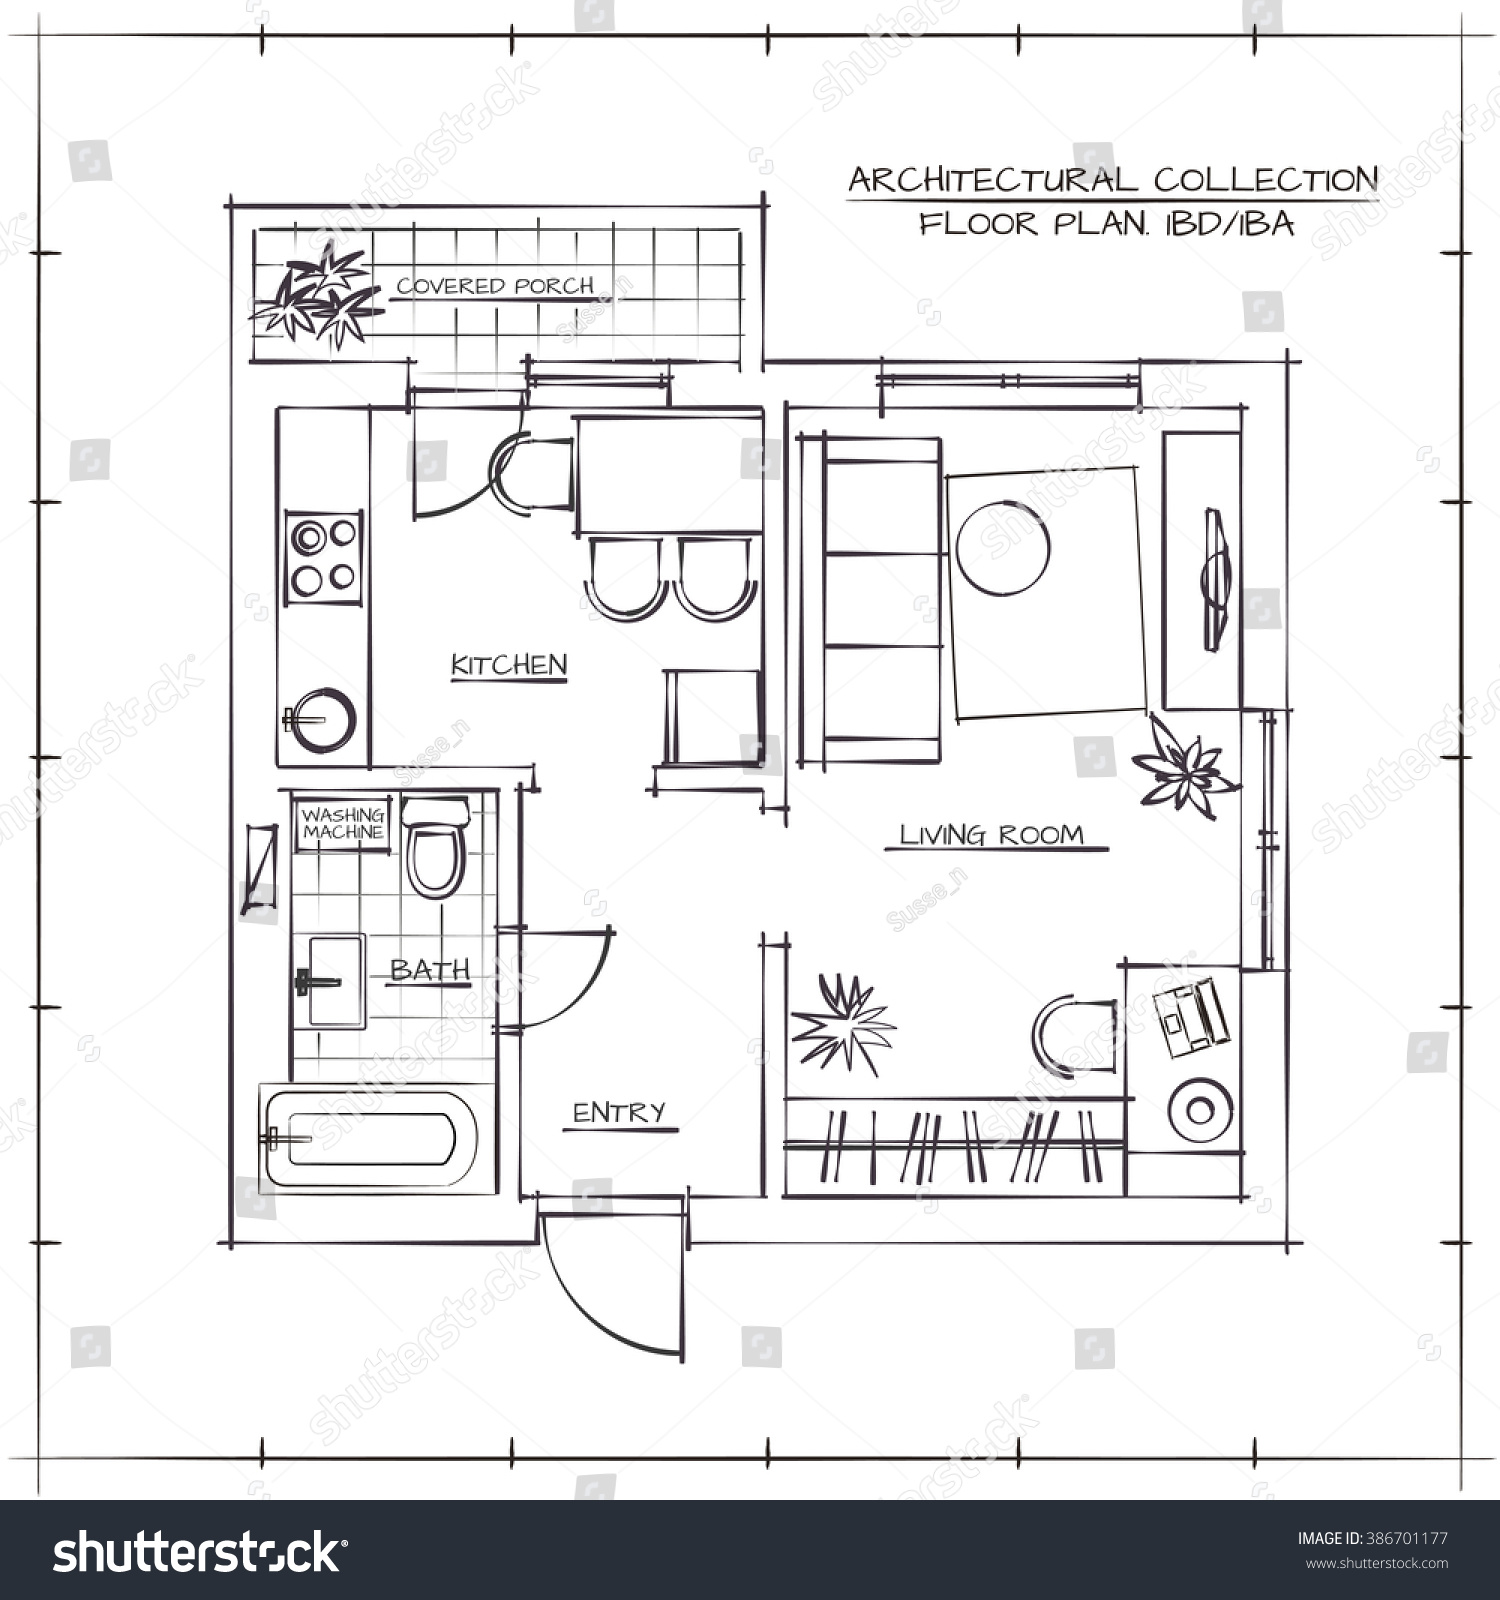 Architectural Hand Drawn Floor Plan Bedroom Stock Vector Royalty Schematic Planone Apartment